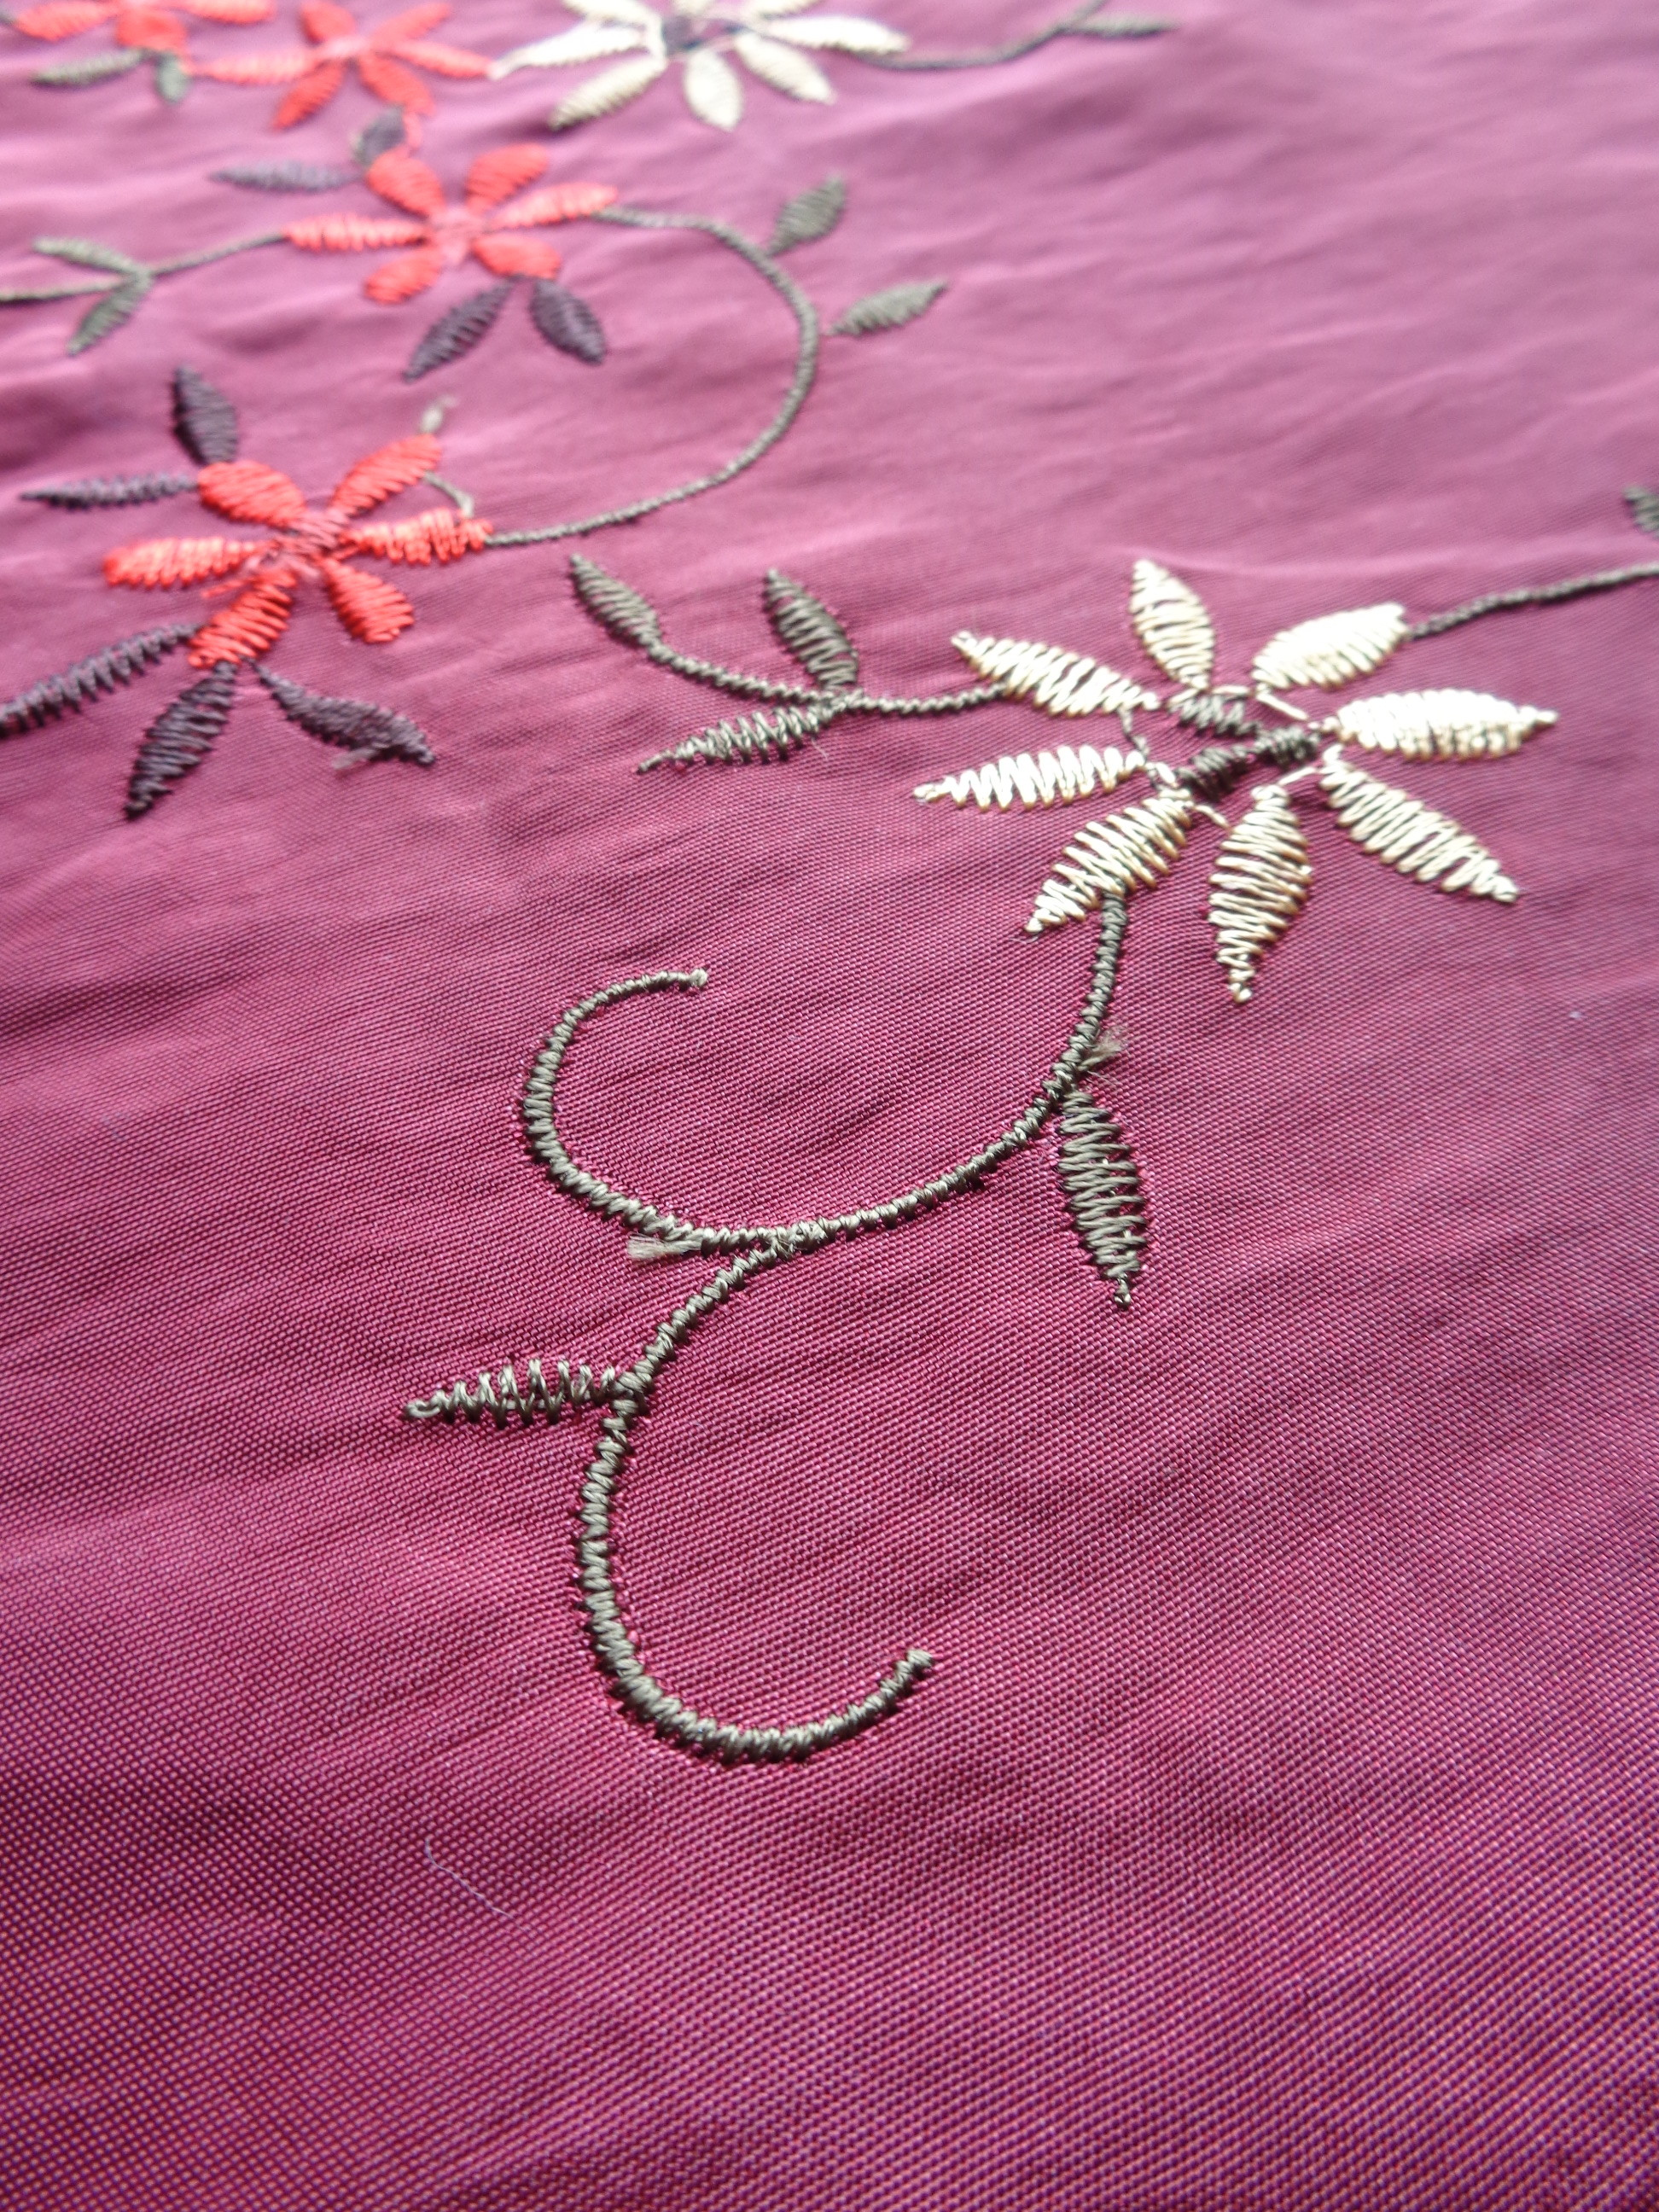 online period fabric store, handbound fabrics - online shop, where can I get embroidered taffeta from